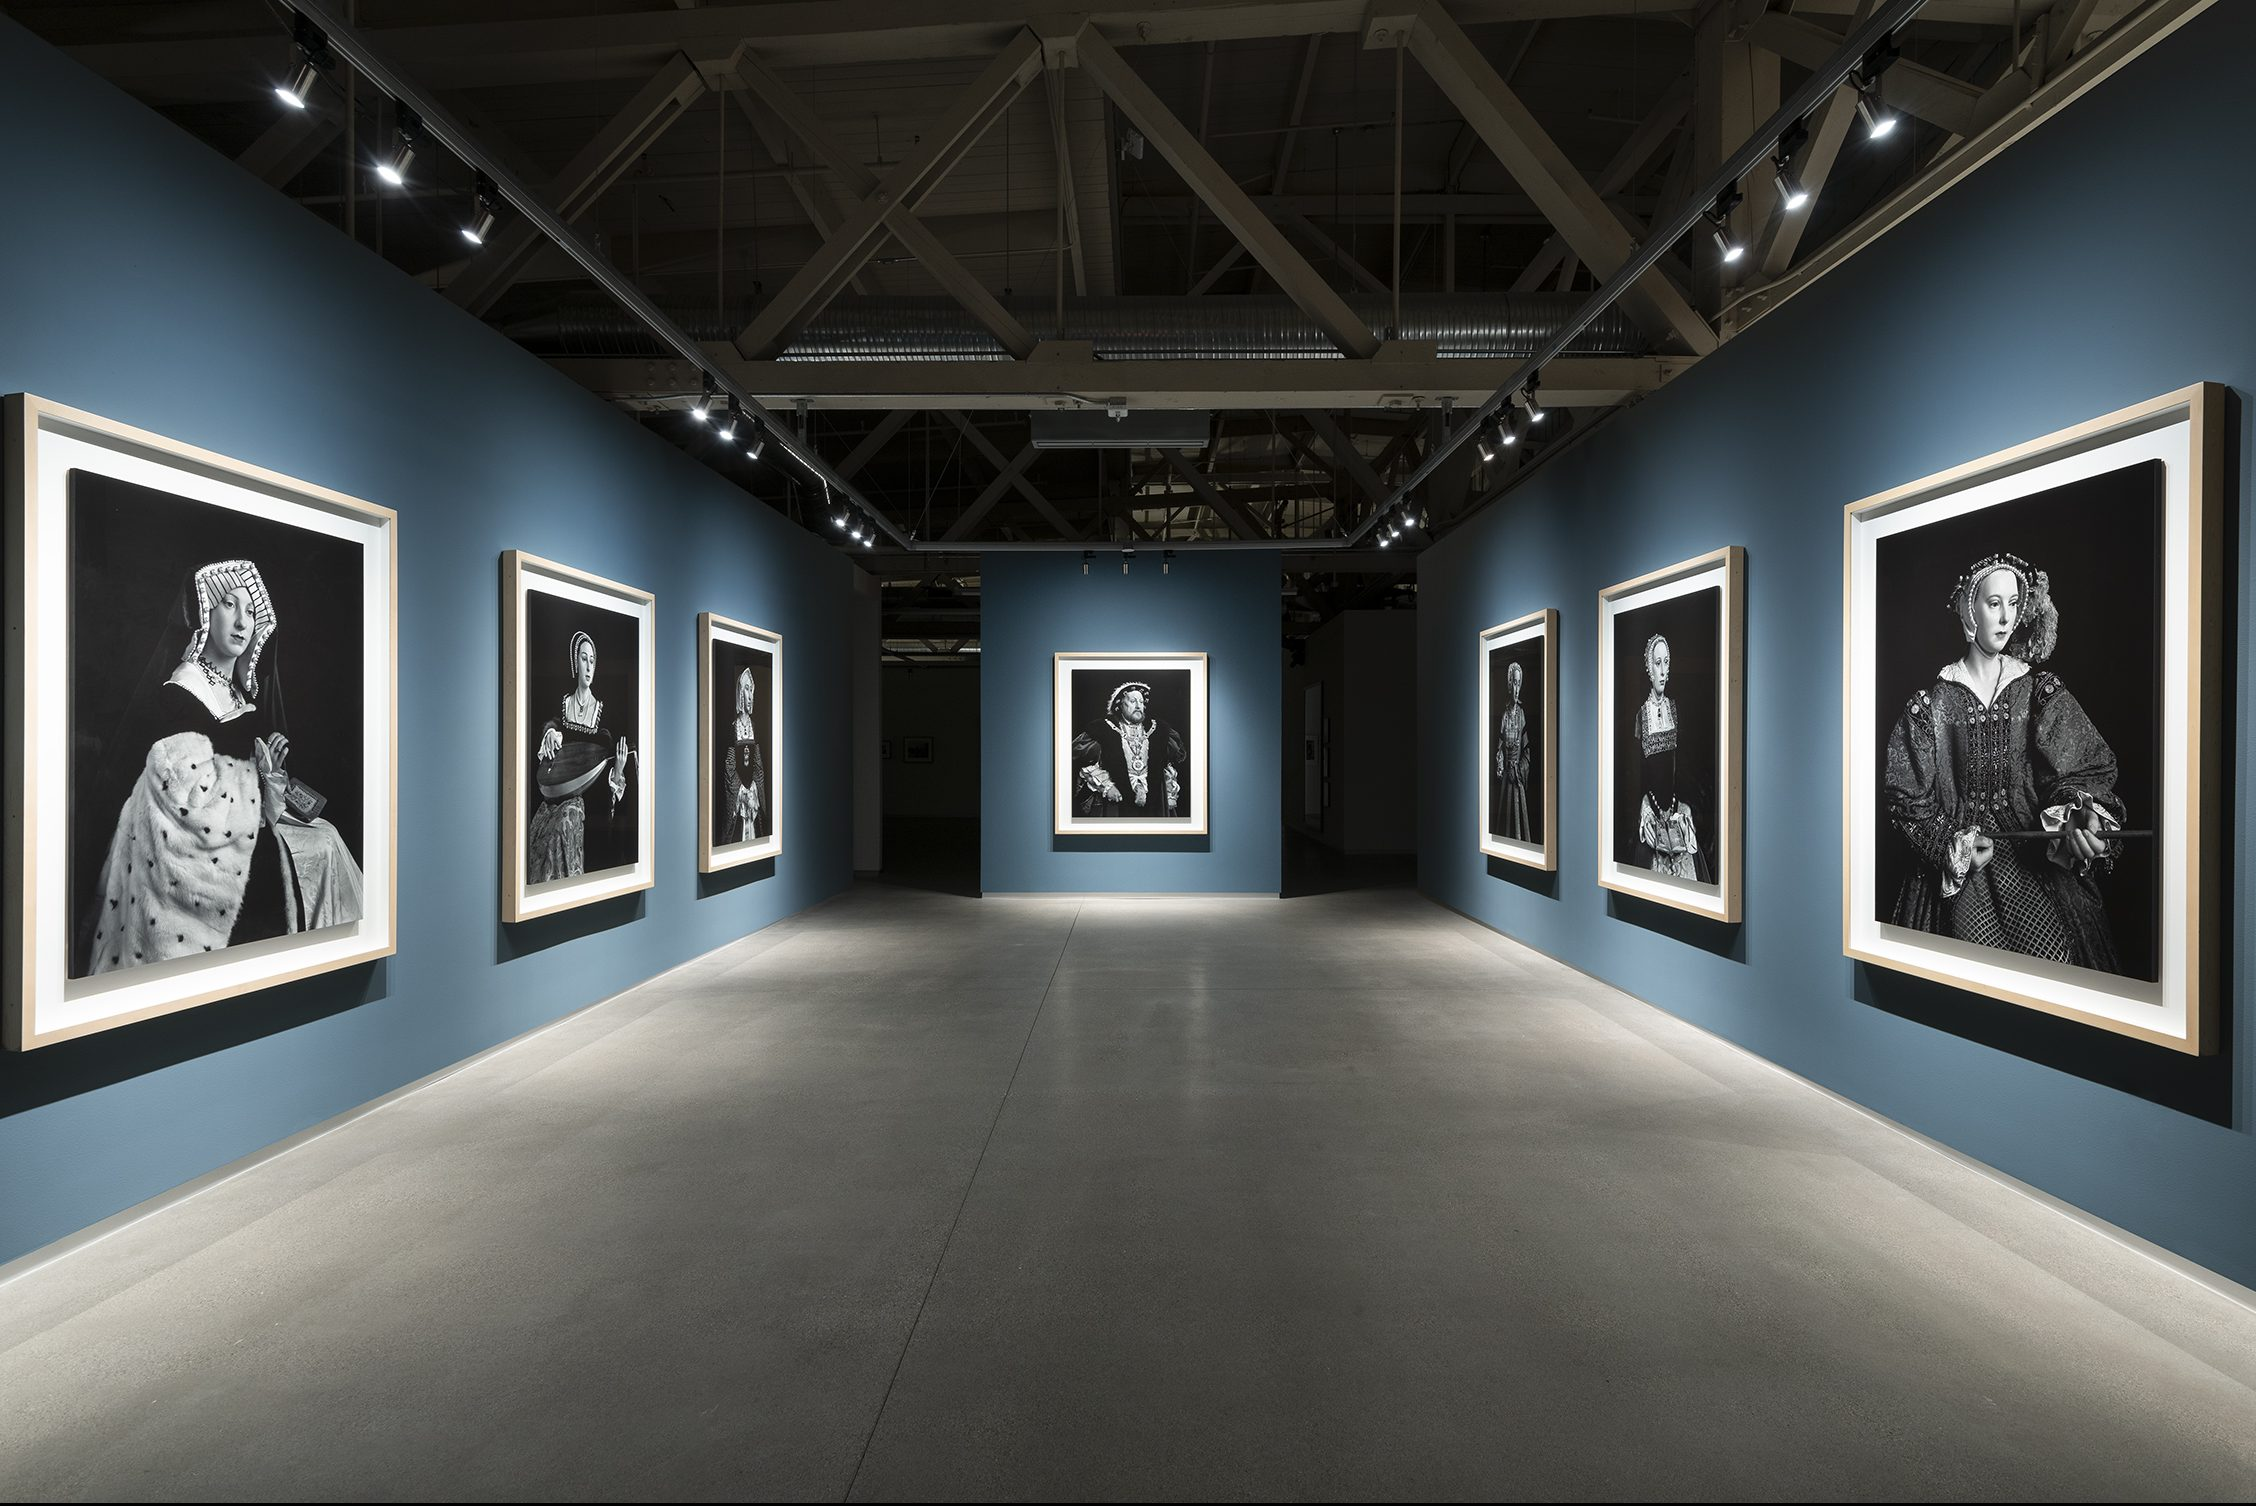 Seven black and white images hand on the blue walls of a narrowing gallery space, each equally sized with one in the far, center wall. All seem to be portraits of renaissance-era figures.